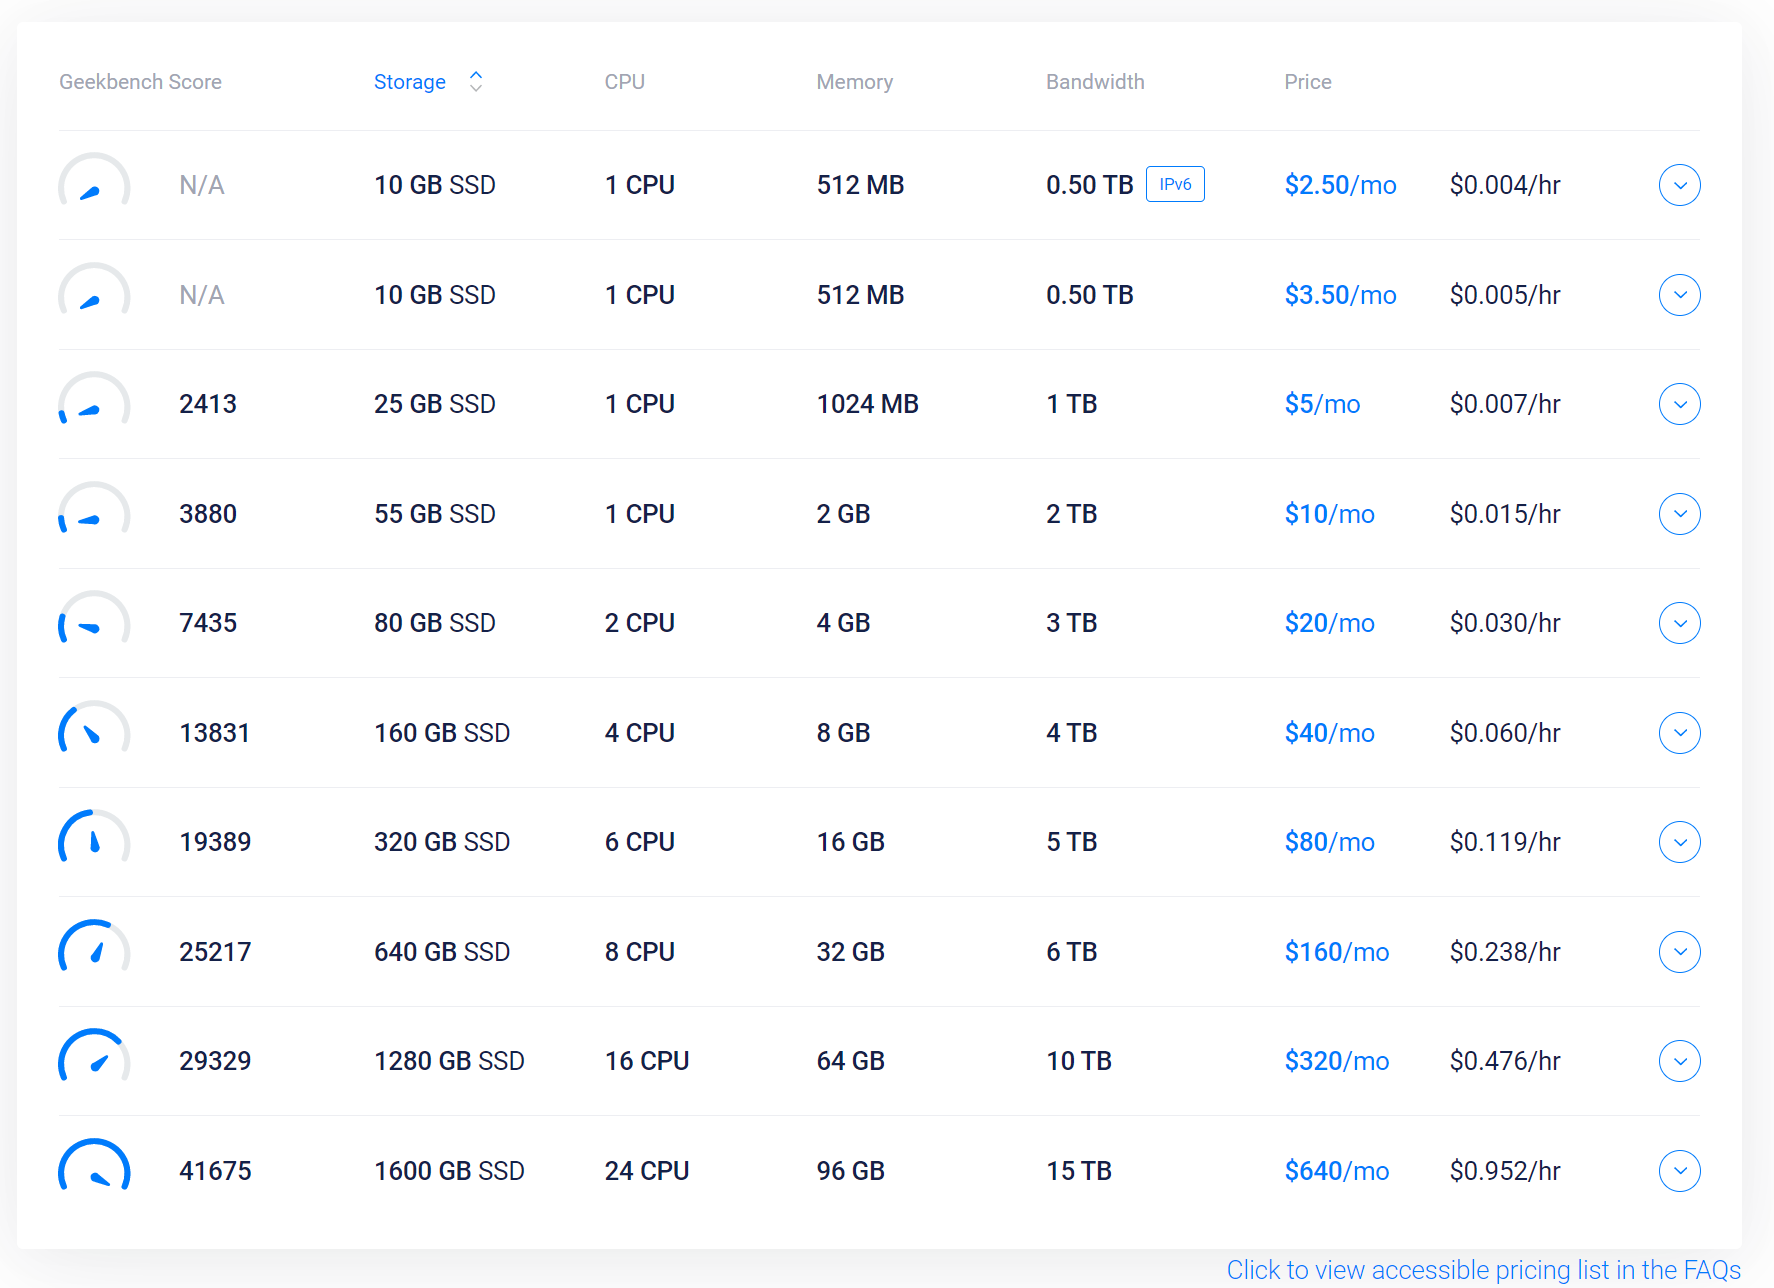 A screenshot of the original Vultr pricing table